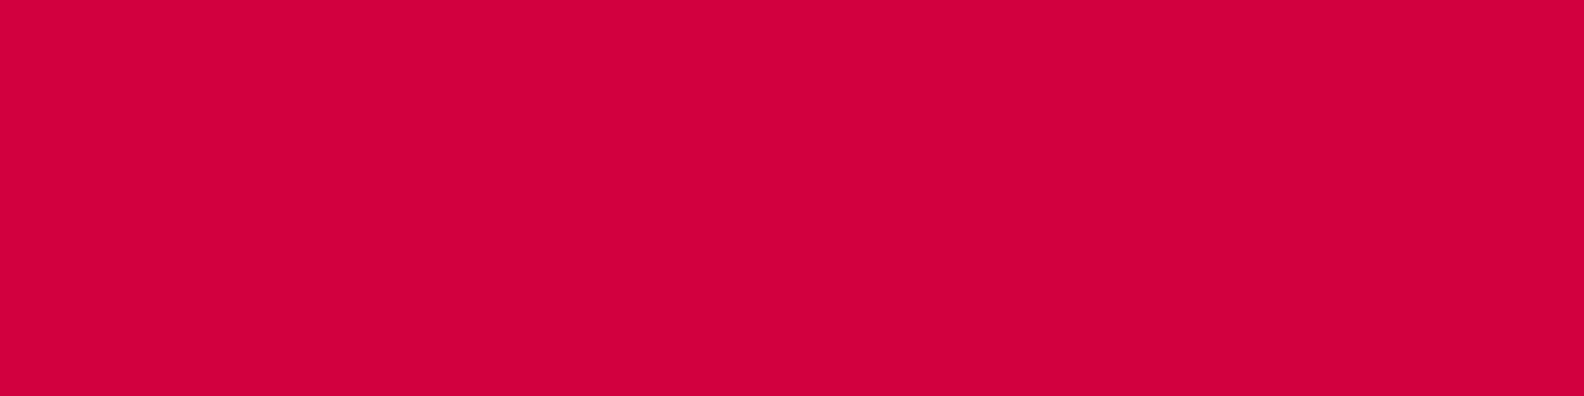 1584x396 Utah Crimson Solid Color Background